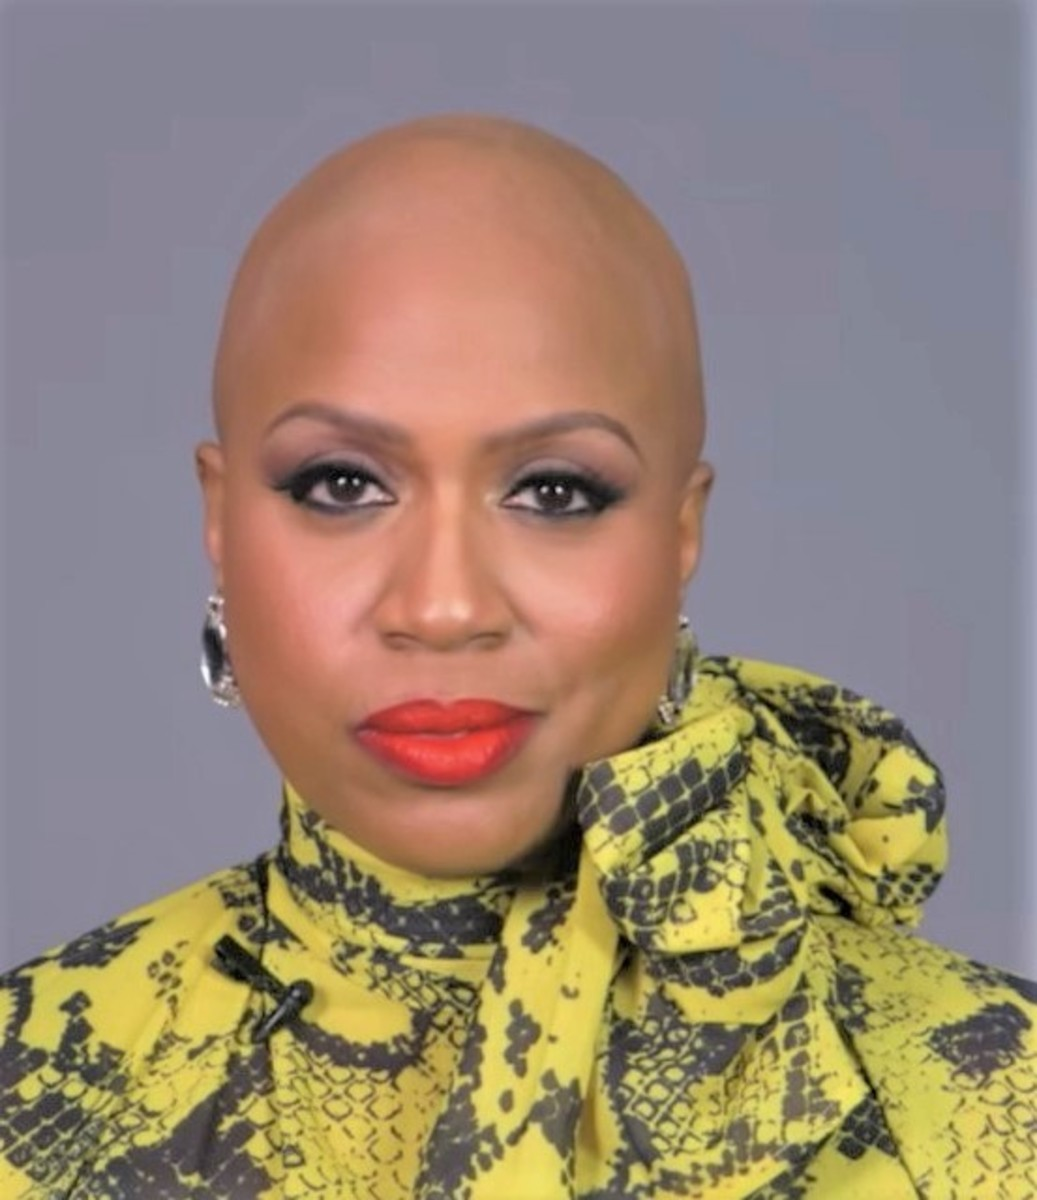 Ayanna Pressley Is Courageous for Revealing Her Alopecia